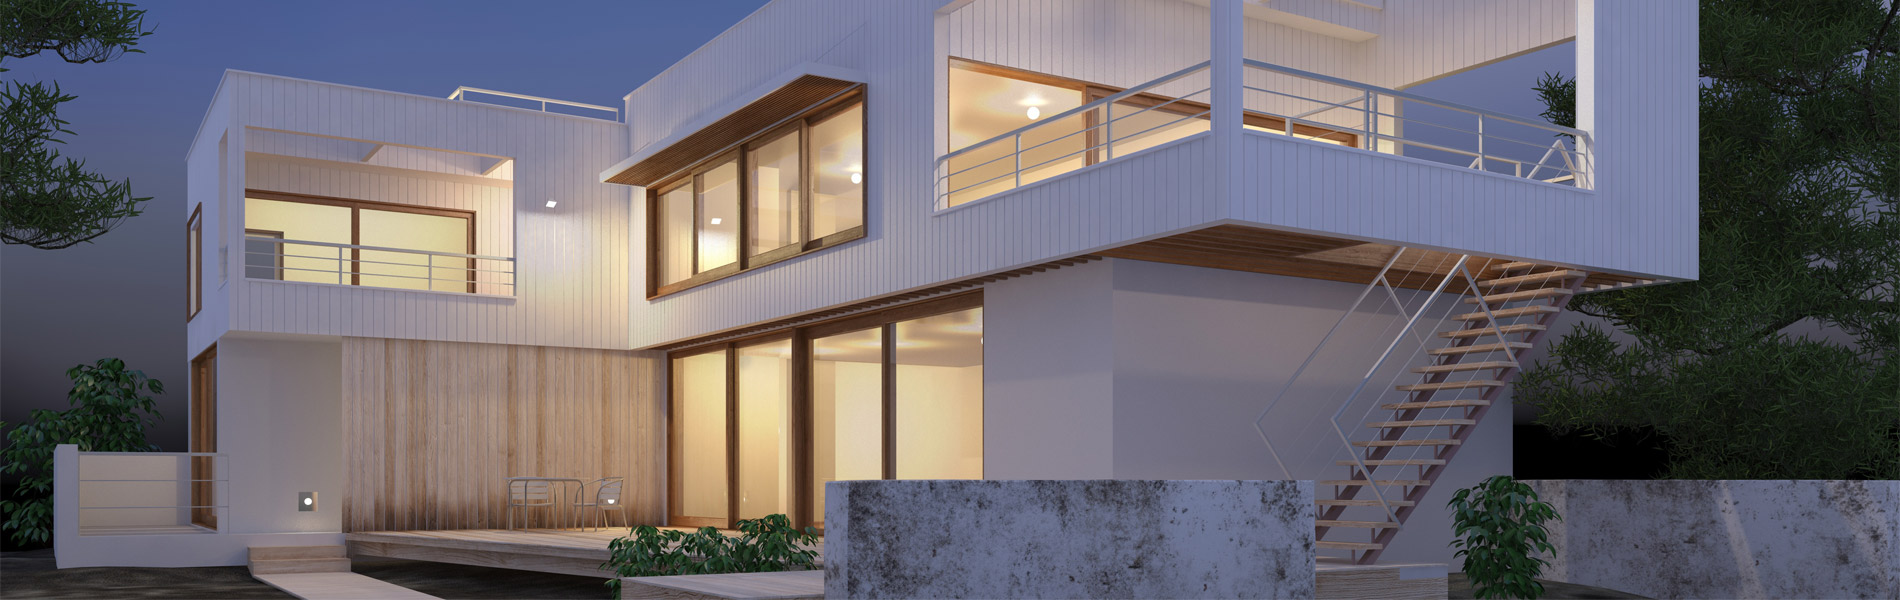 Modern home with rendered exterior and walls